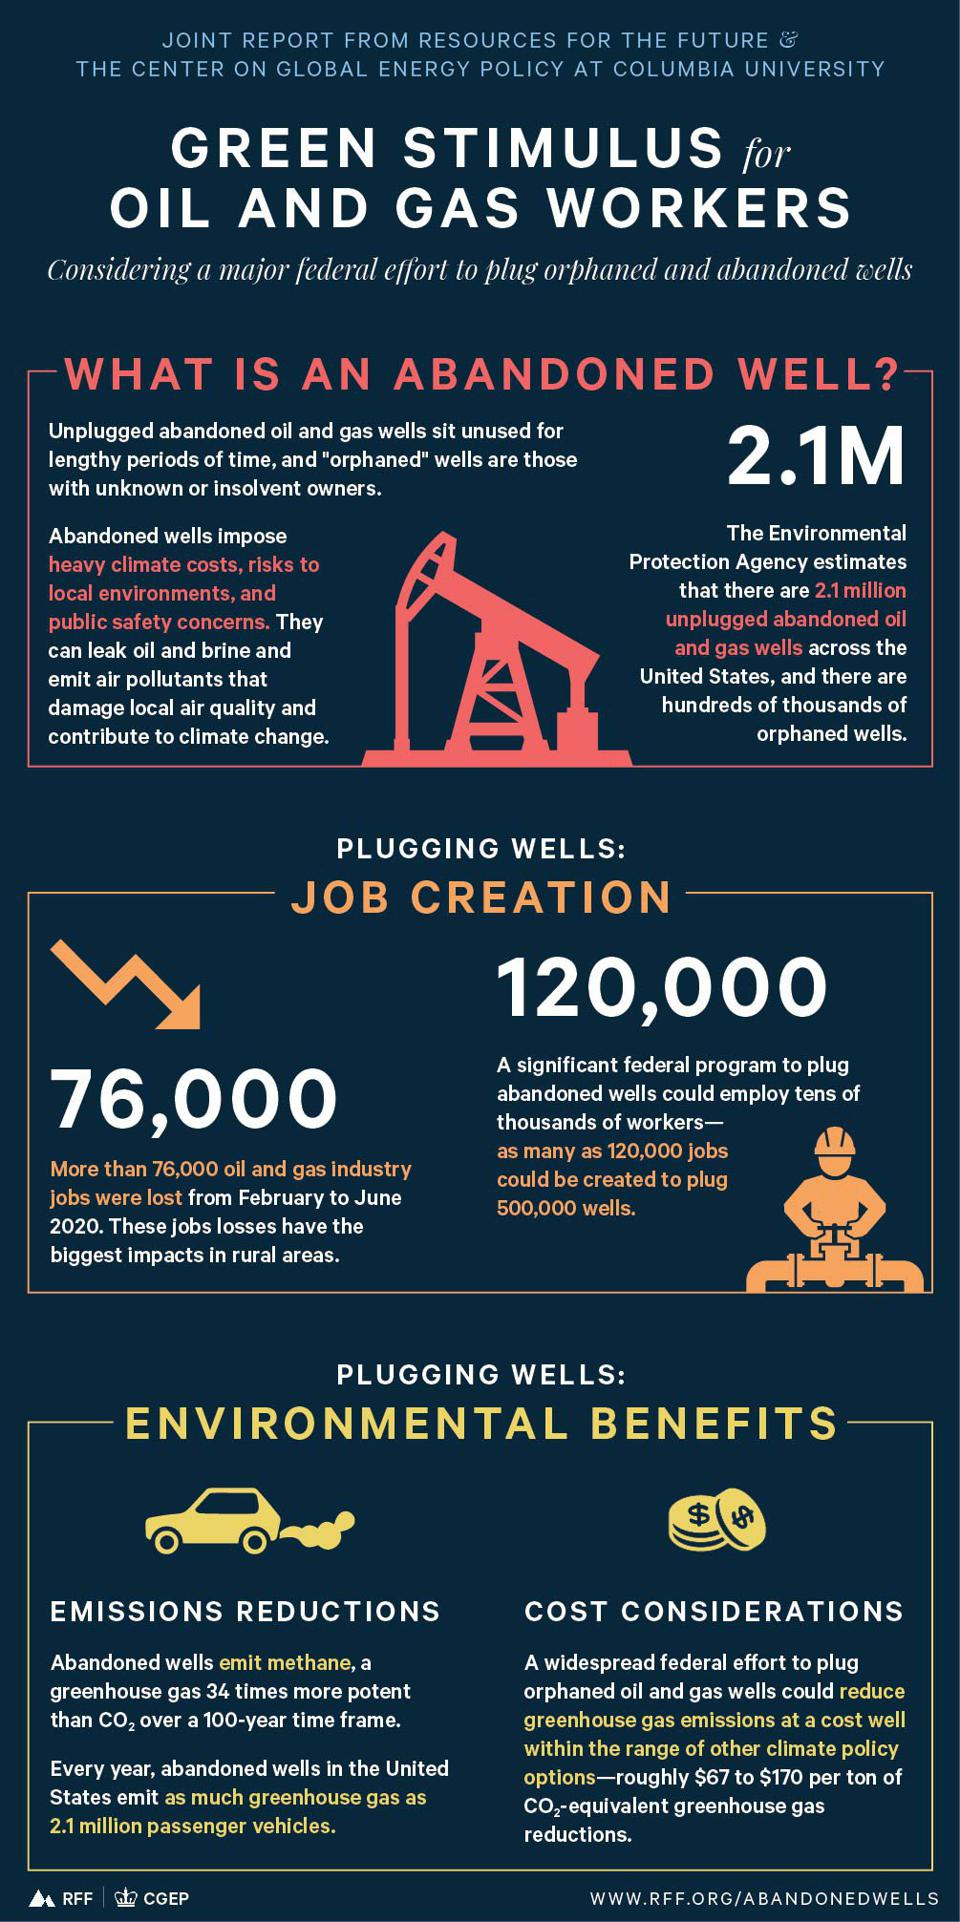 Green stimulus for oil and gas workers